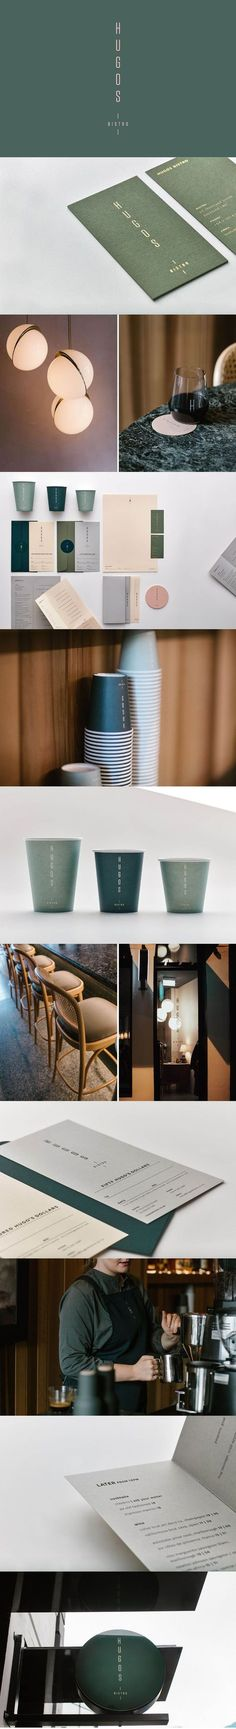 Hugo's Bistro    Branding and collateral for an all-day bistro in Auckland's bustling cityscape.